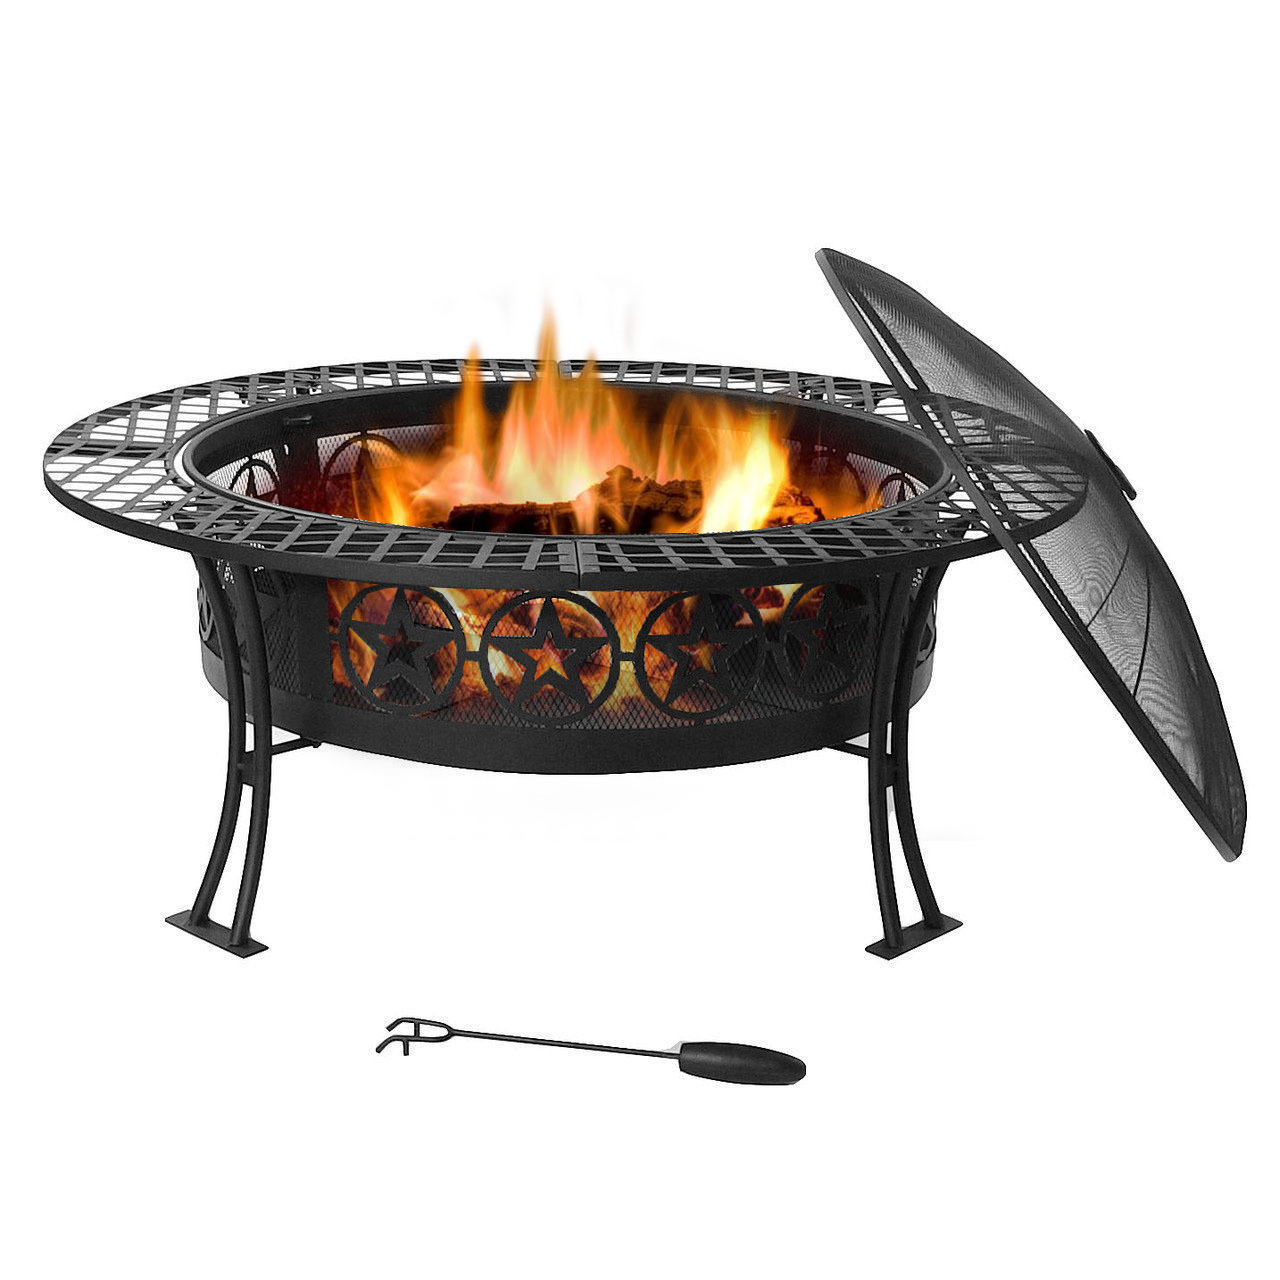 Four Star Fire Pit Table Spark Screen Photo